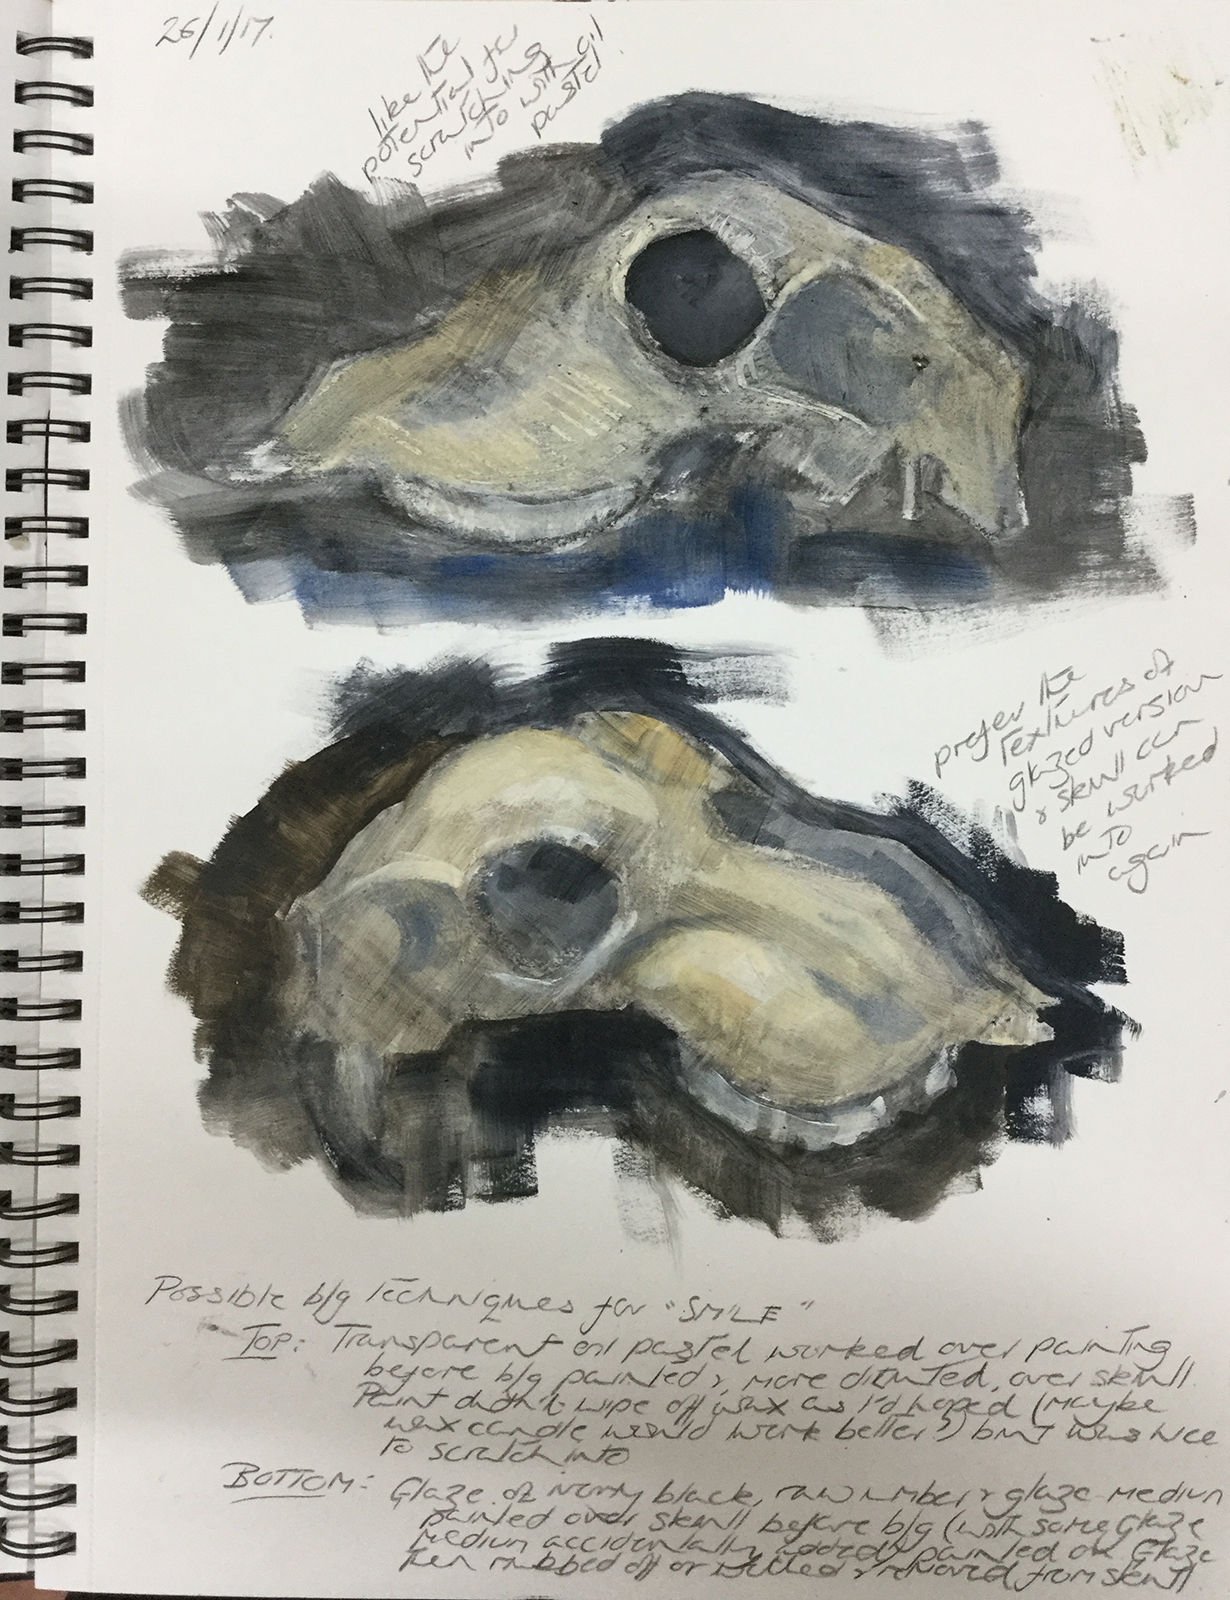 Investigative sheep skull studies in acrylic paint for a later image called 'Smile'.